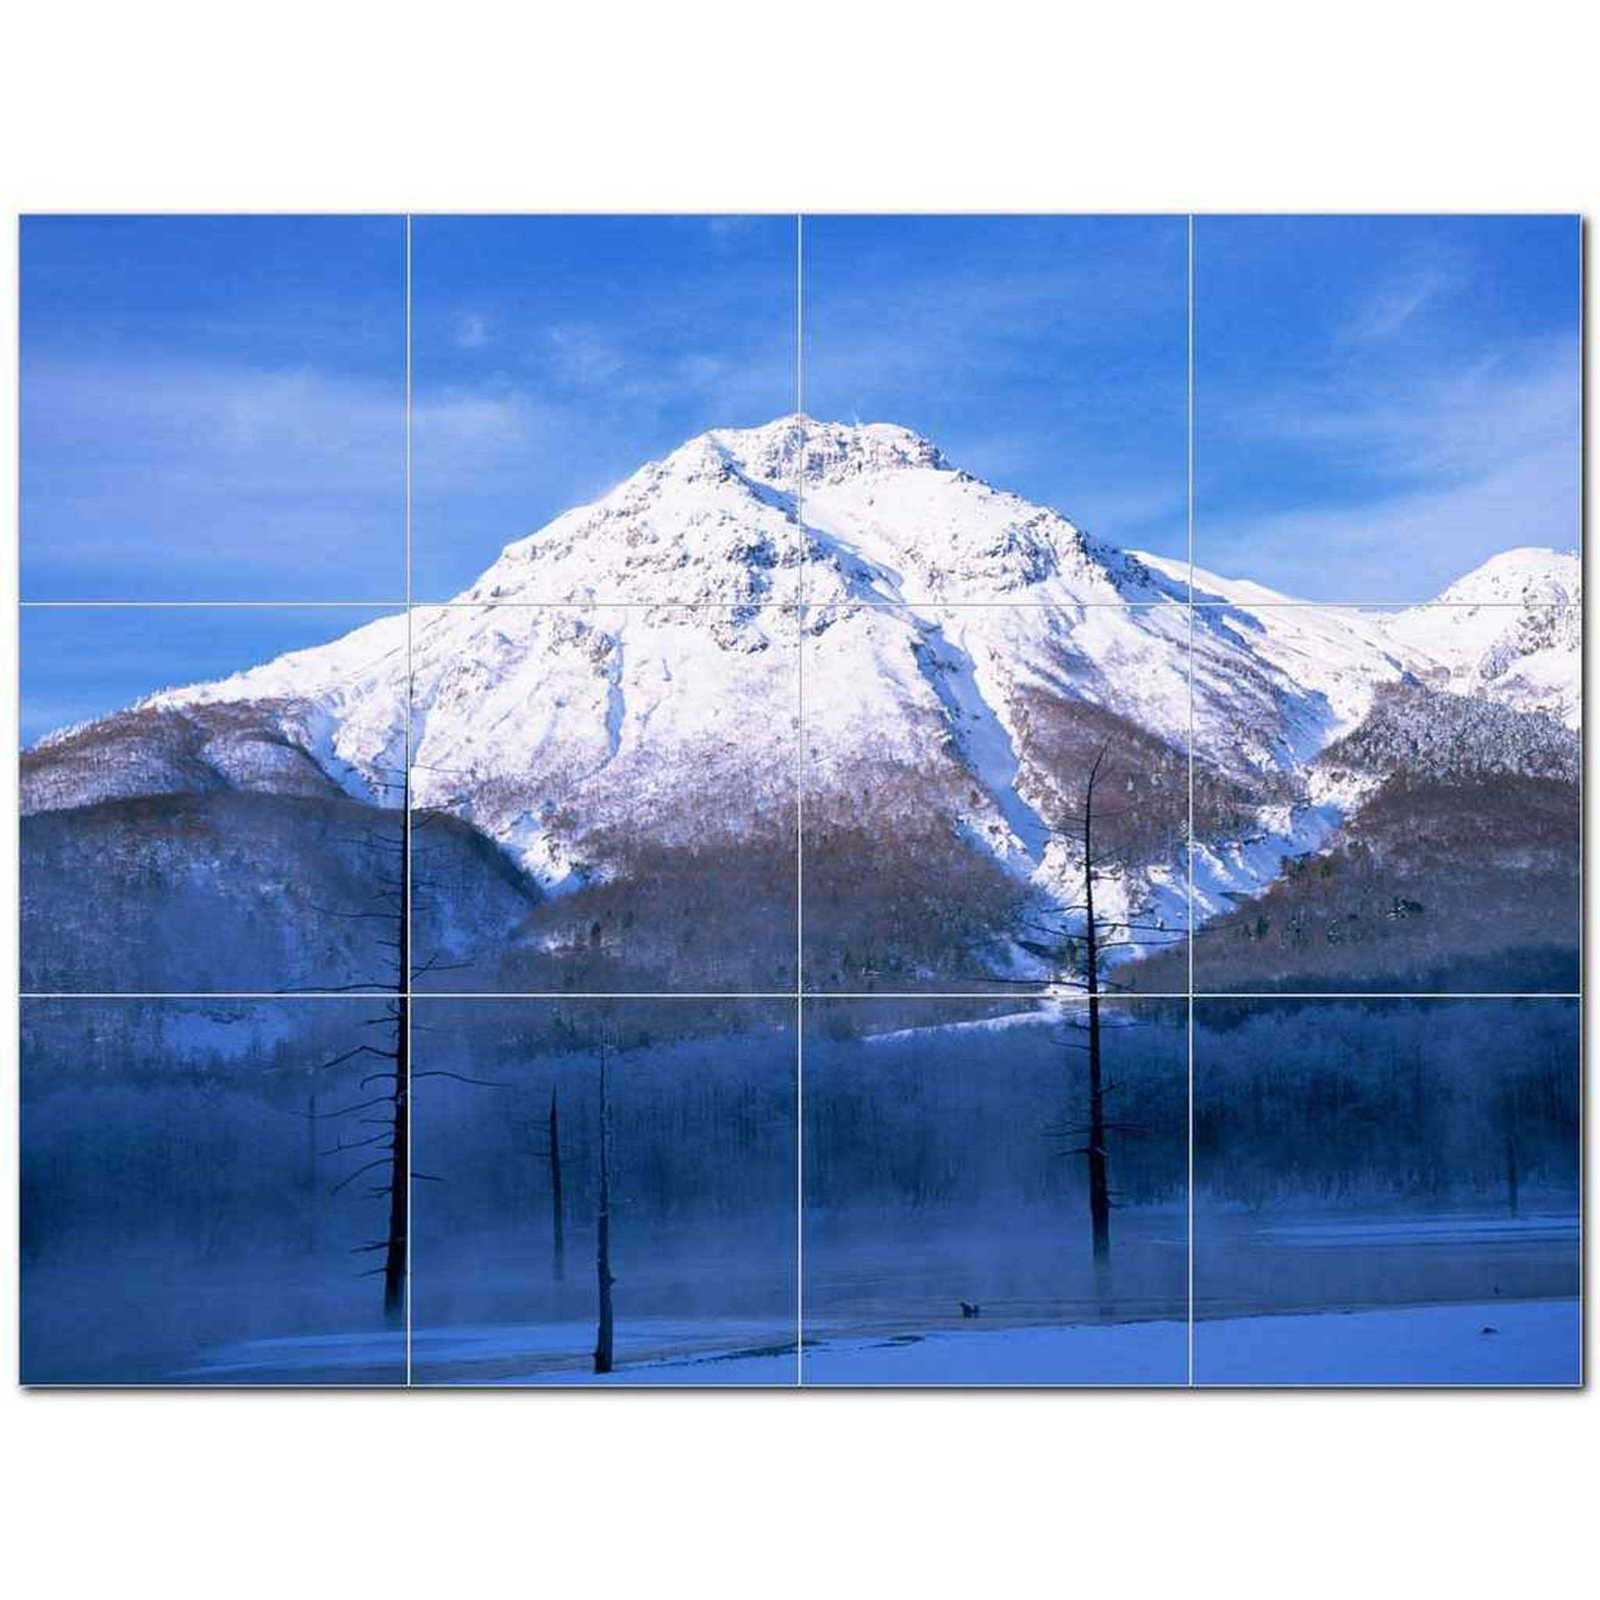 Primary image for Winter Photo Ceramic Tile Mural Kitchen Backsplash Bathroom Shower BAZ406399